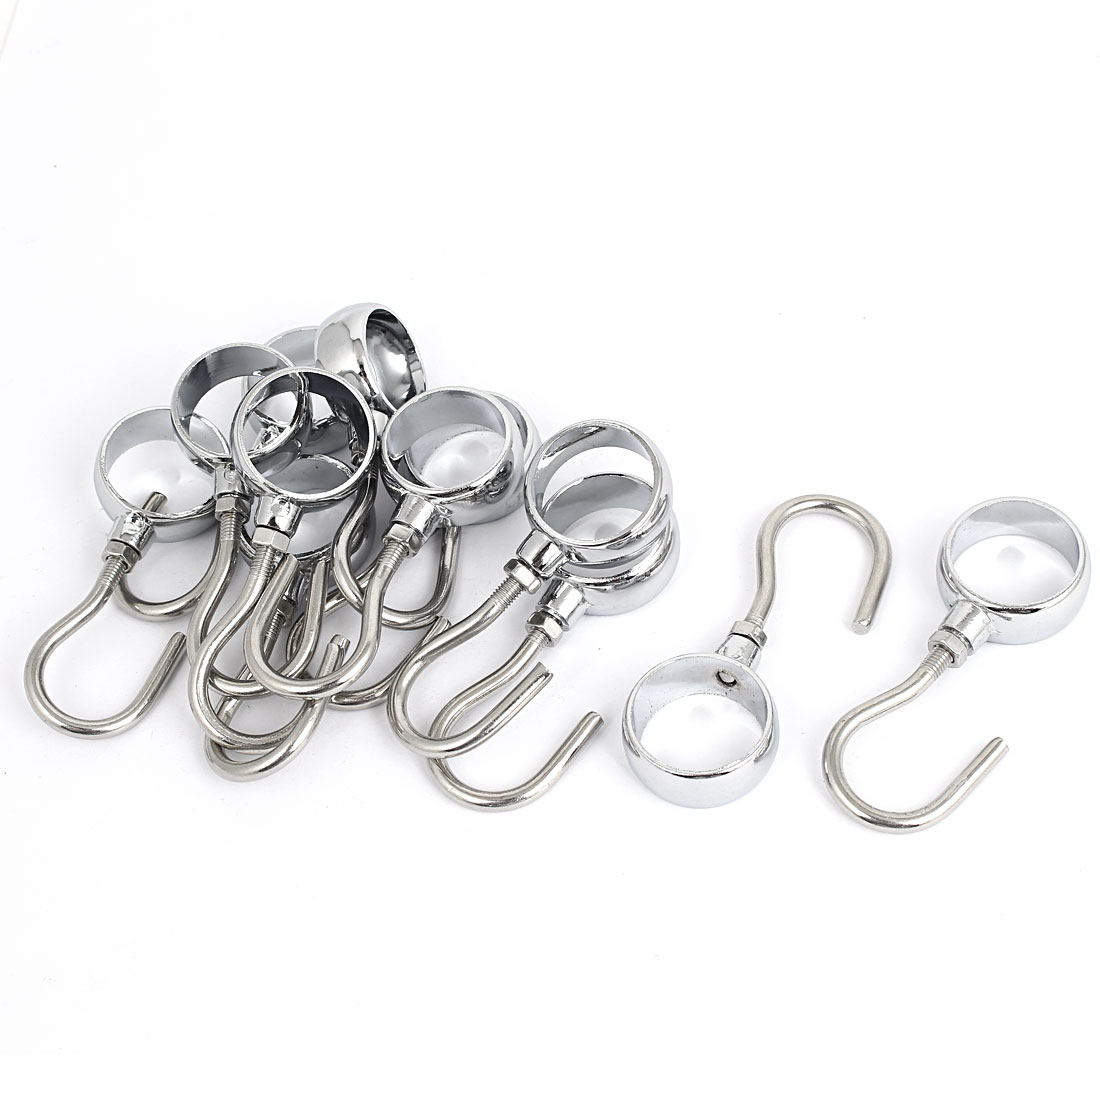 Wardrobe Bathroom 25mm Diameter Removable Clothes Hooks Hangers 12pcs